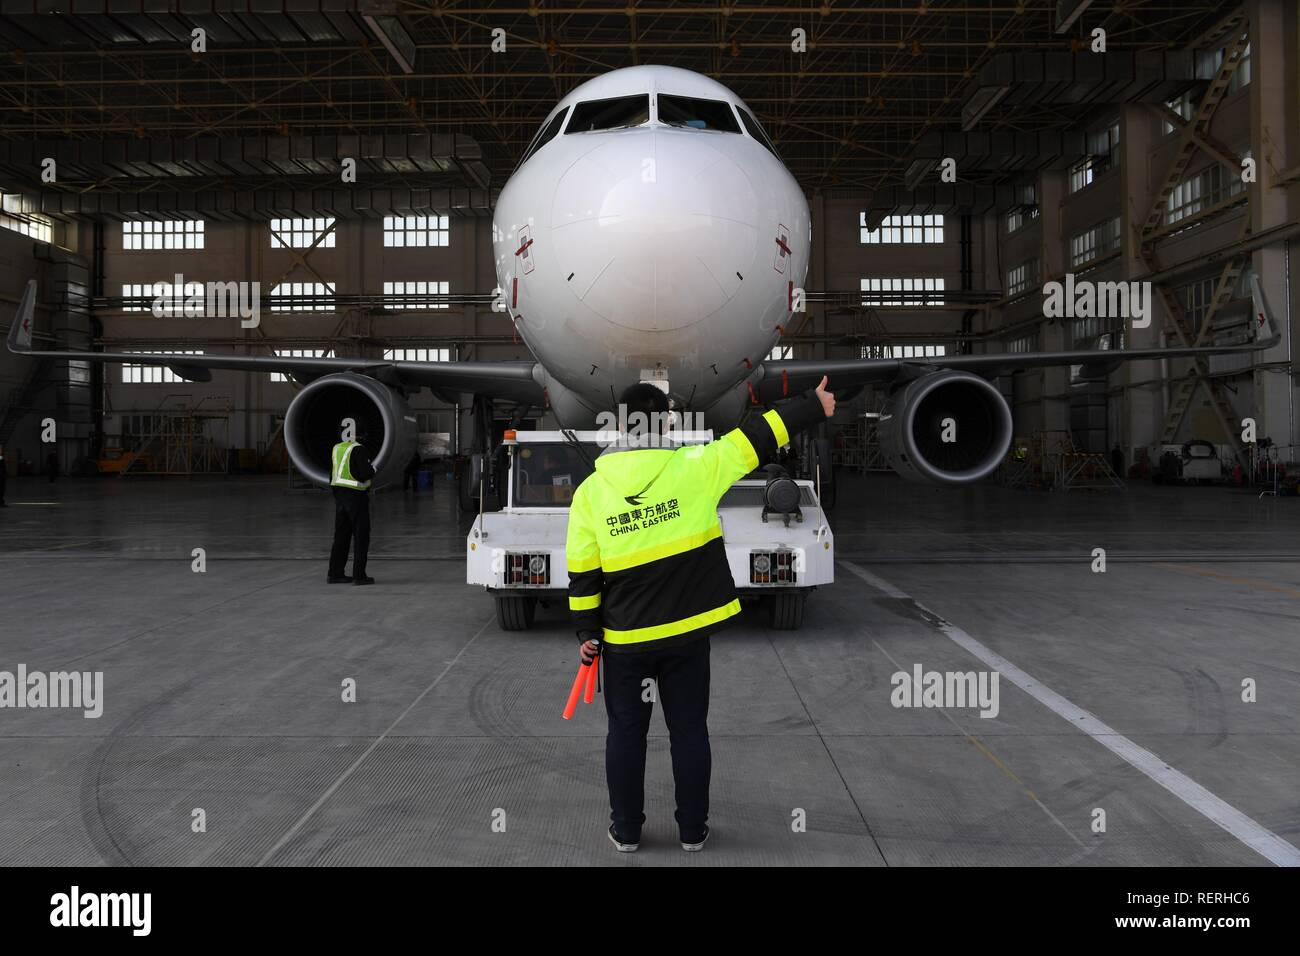 (190123) -- BEIJING, Jan. 23, 2019 (Xinhua) -- A mechanic of China Eastern Airlines guides the repaired aircraft out of the warehouse at Zhongchuan International Airport in Lanzhou, capital of northwest China's Gansu Province, Jan. 31, 2018. China's civil aviation industry is accelerating its advance into the digital era, with major players sending clear signals of new opportunities worldwide. (Xinhua/Fan Peishen) Stock Photo